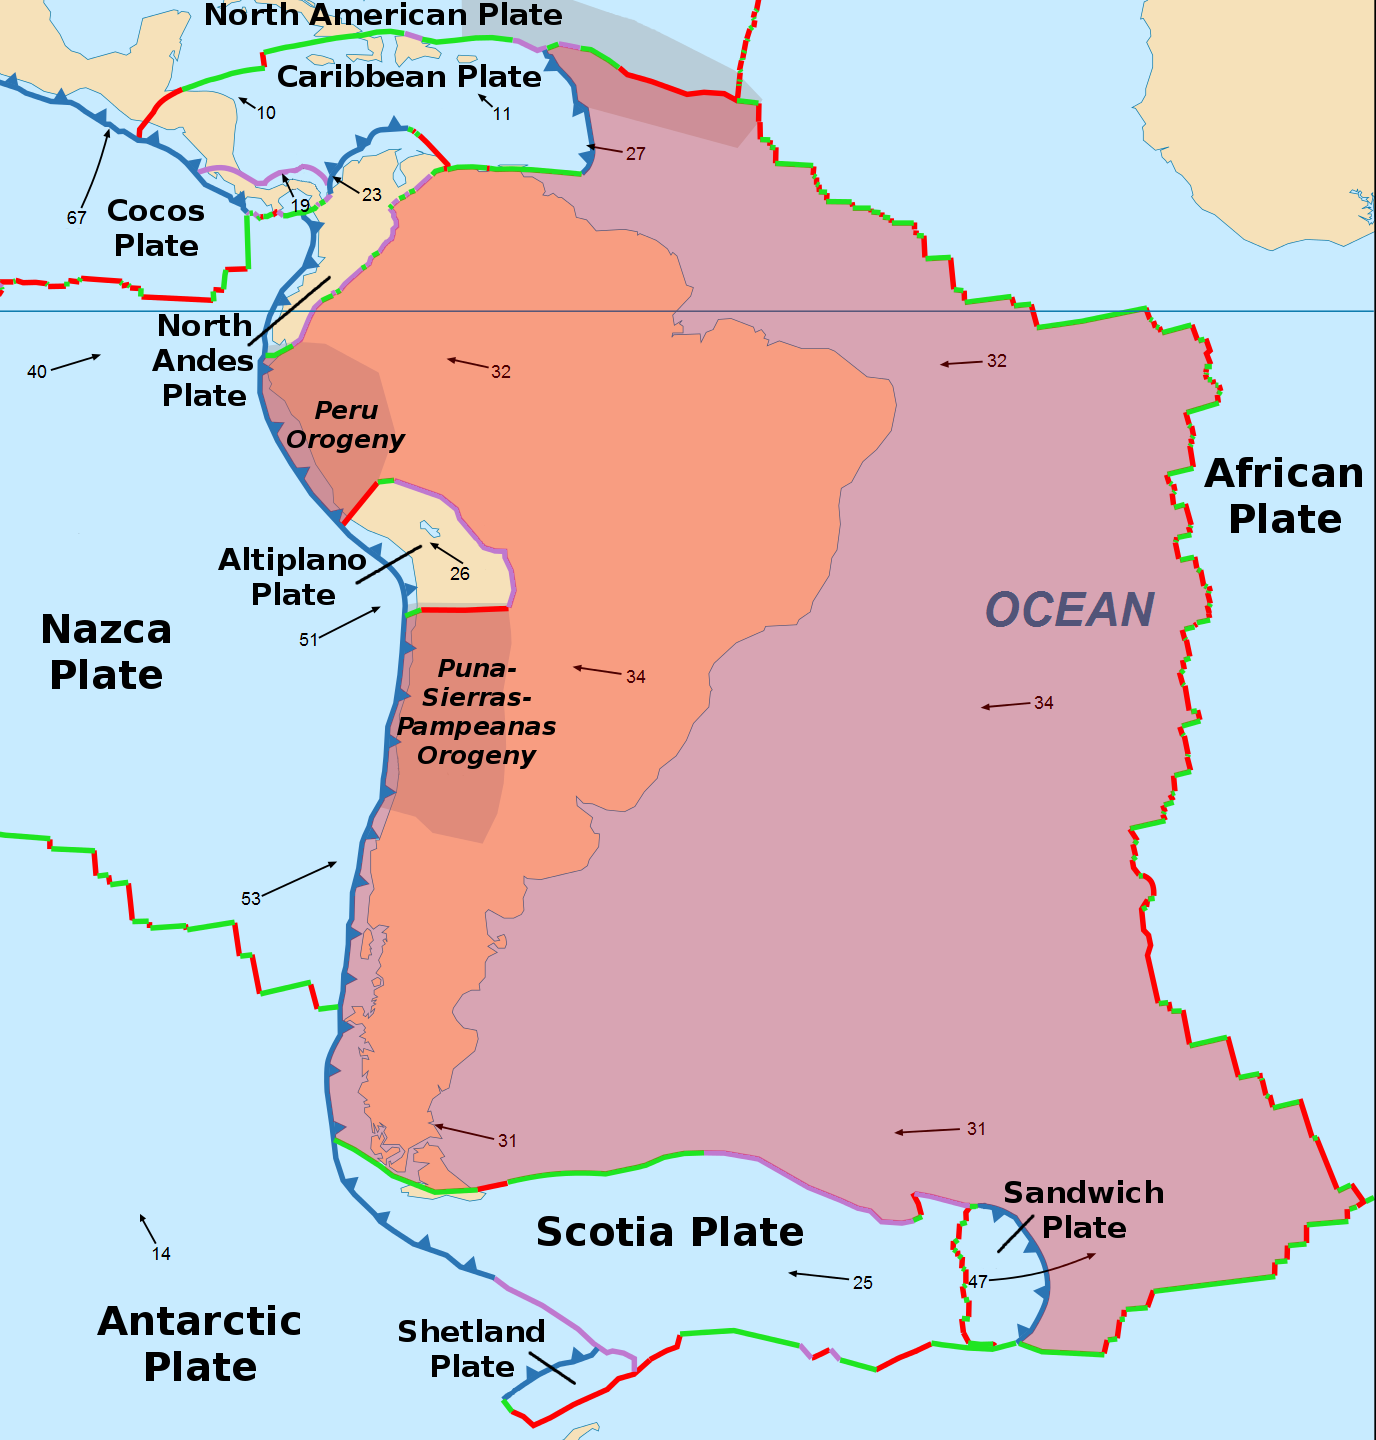 South America: South American Plate